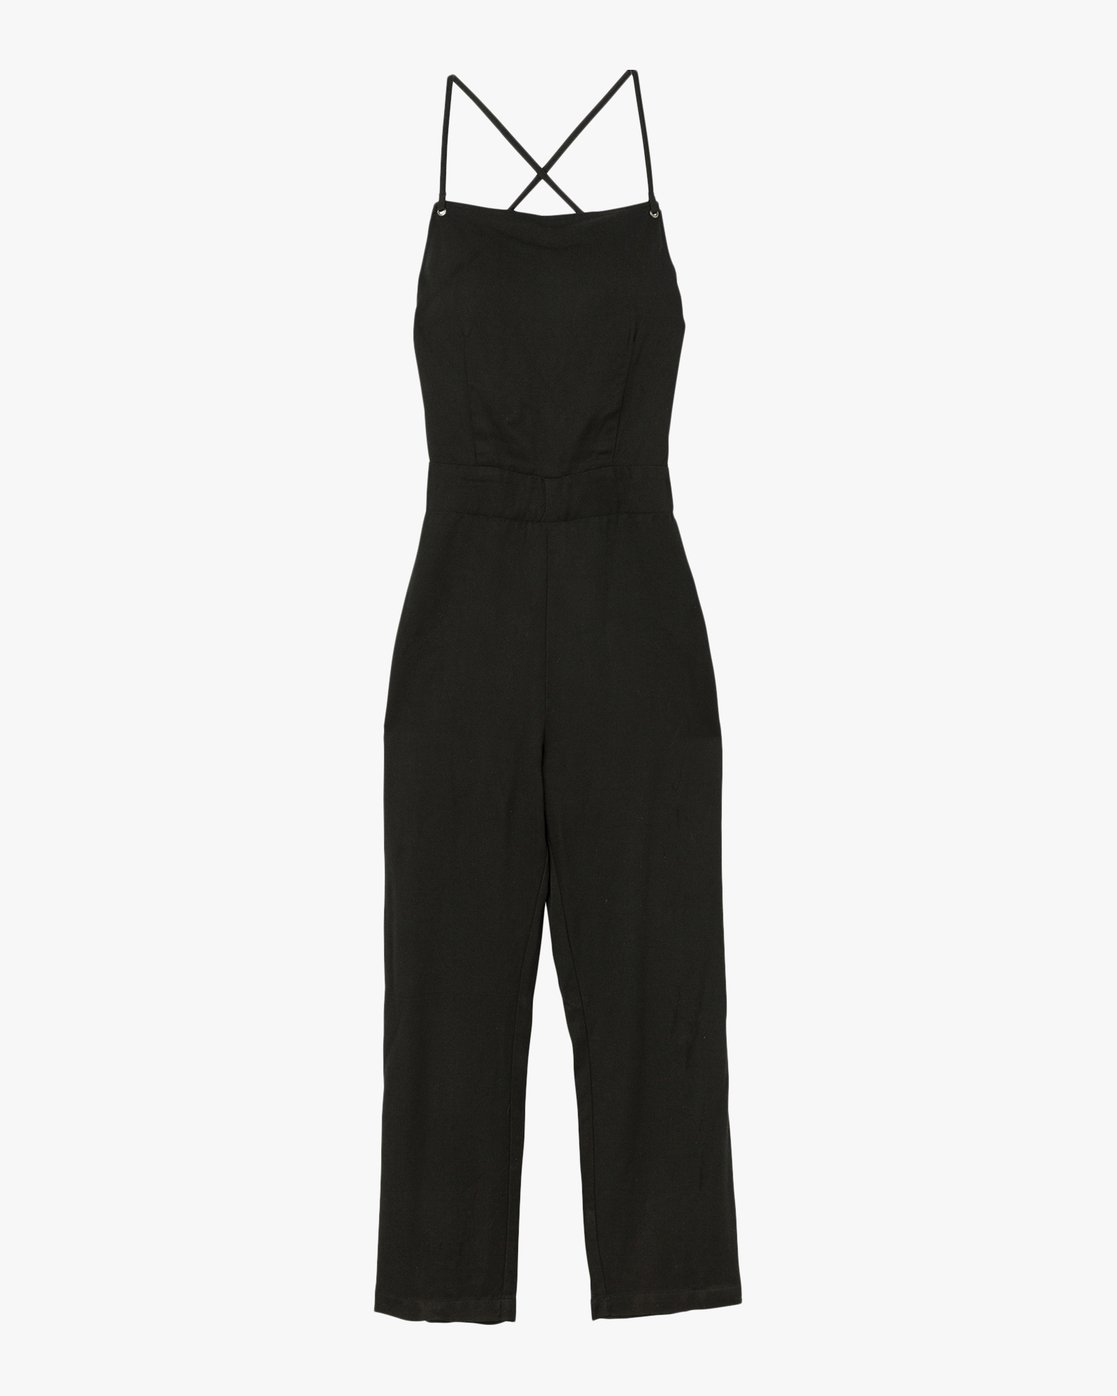 4 Free Fall Wide Leg Jumpsuit Black WN02SRFR RVCA